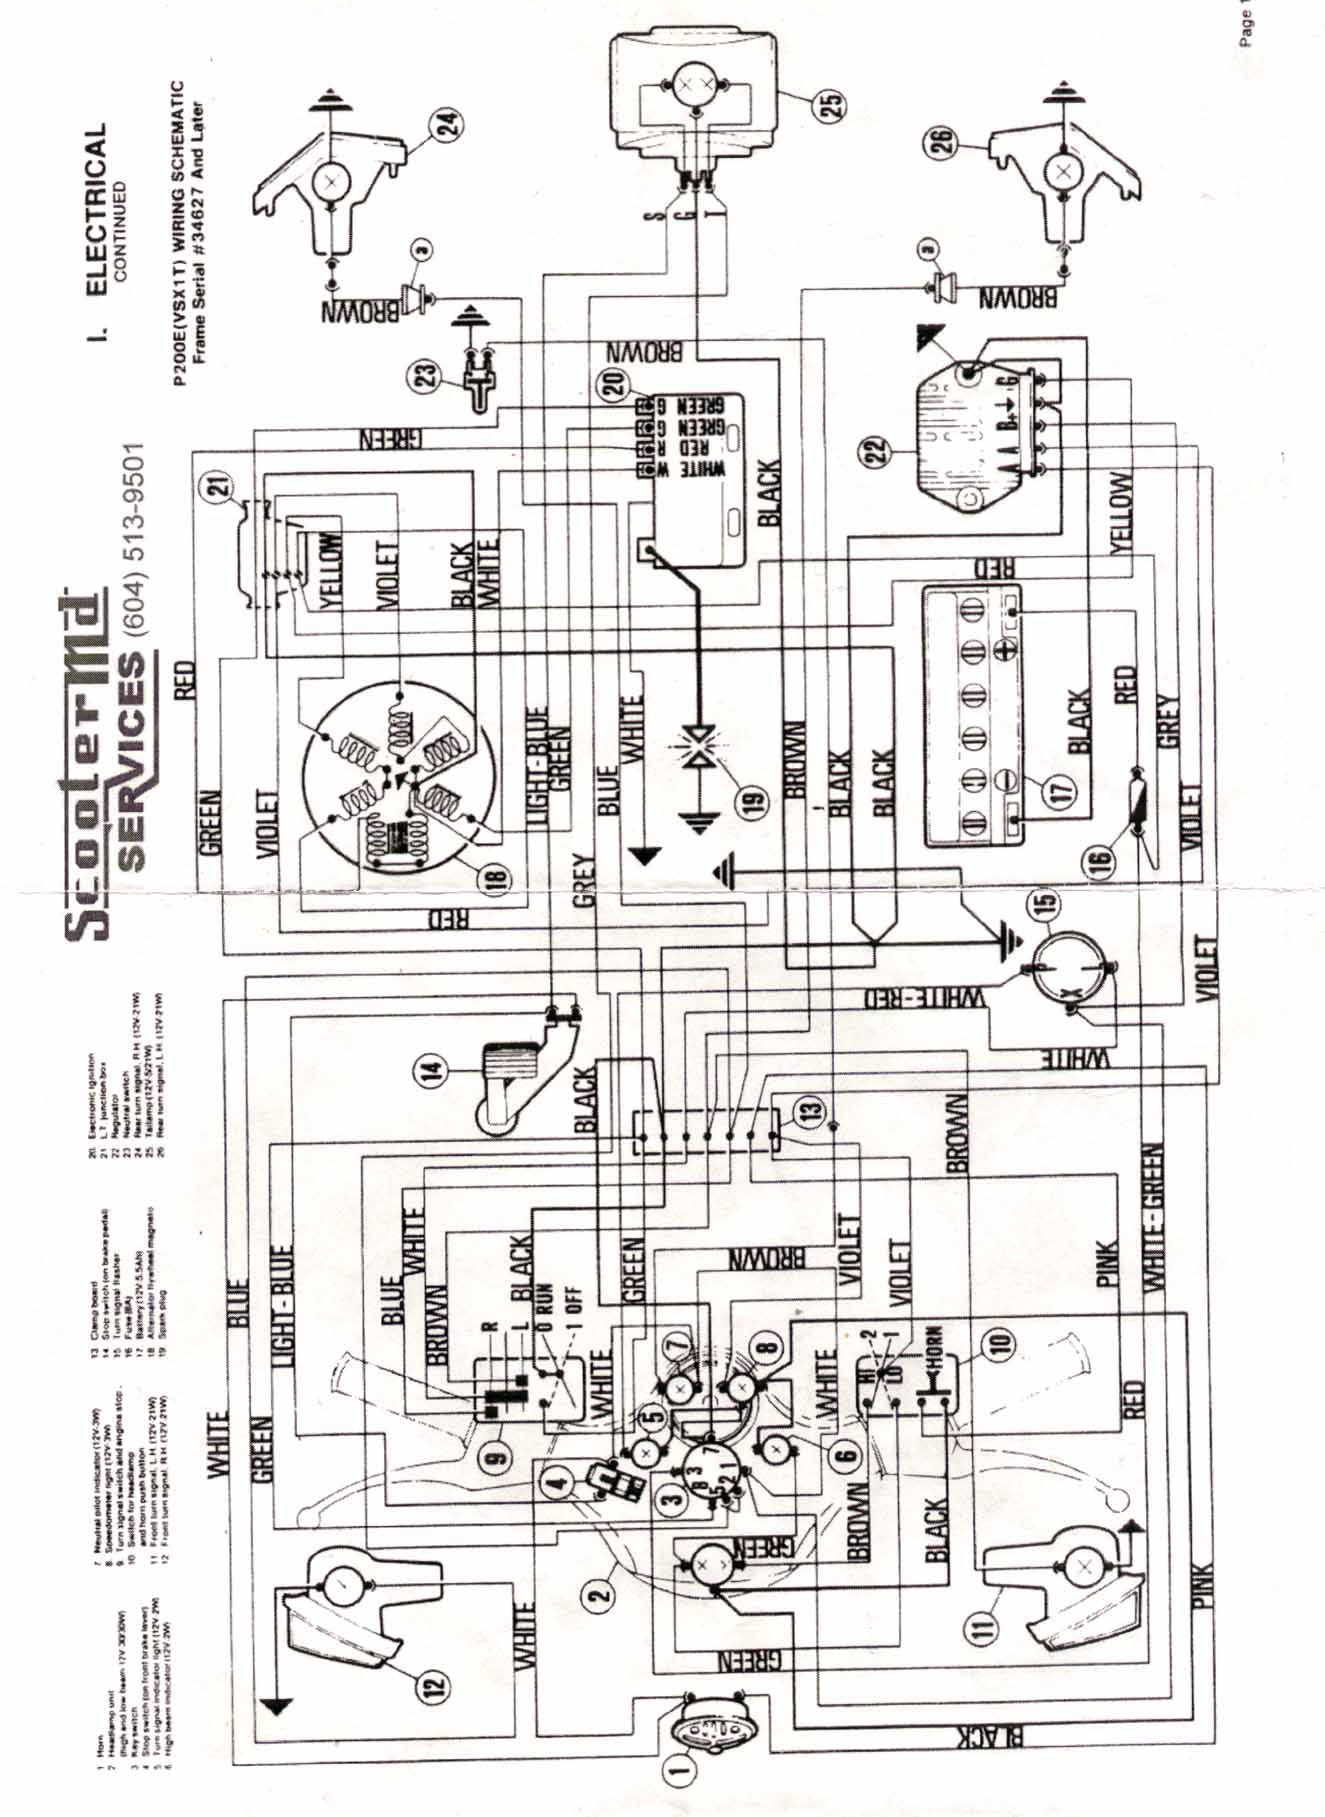 Vespa Fuse Box Lancer Wiring Diagram Wirdig Gts Ie Super Sport 2006 Harley Davidson Road King P Series Maintenance Repair 3 Terminal Voltage Regulator Batteryless